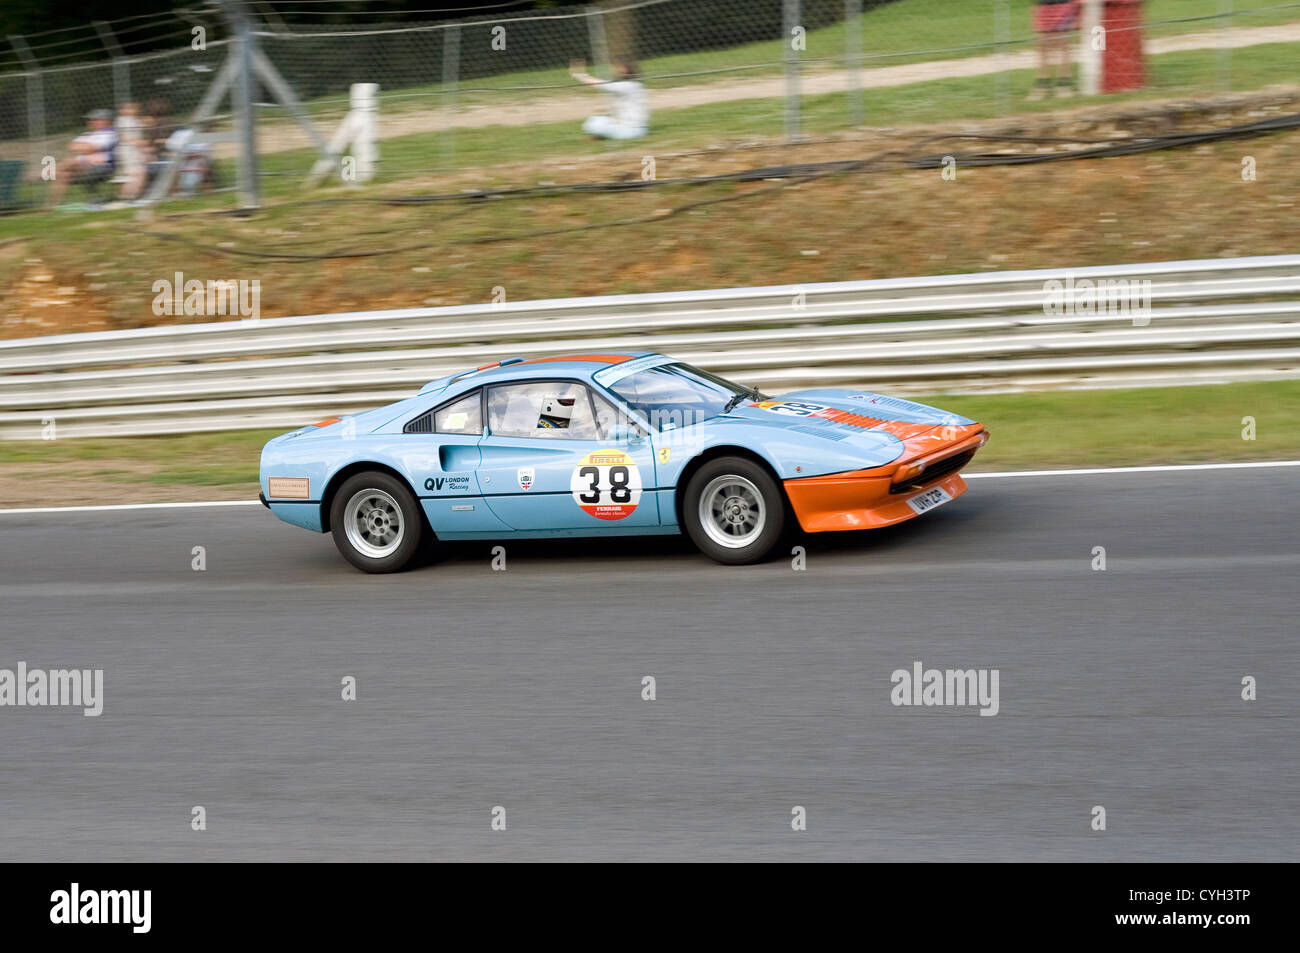 Gulf Racing Colours High Resolution Stock Photography And Images Alamy